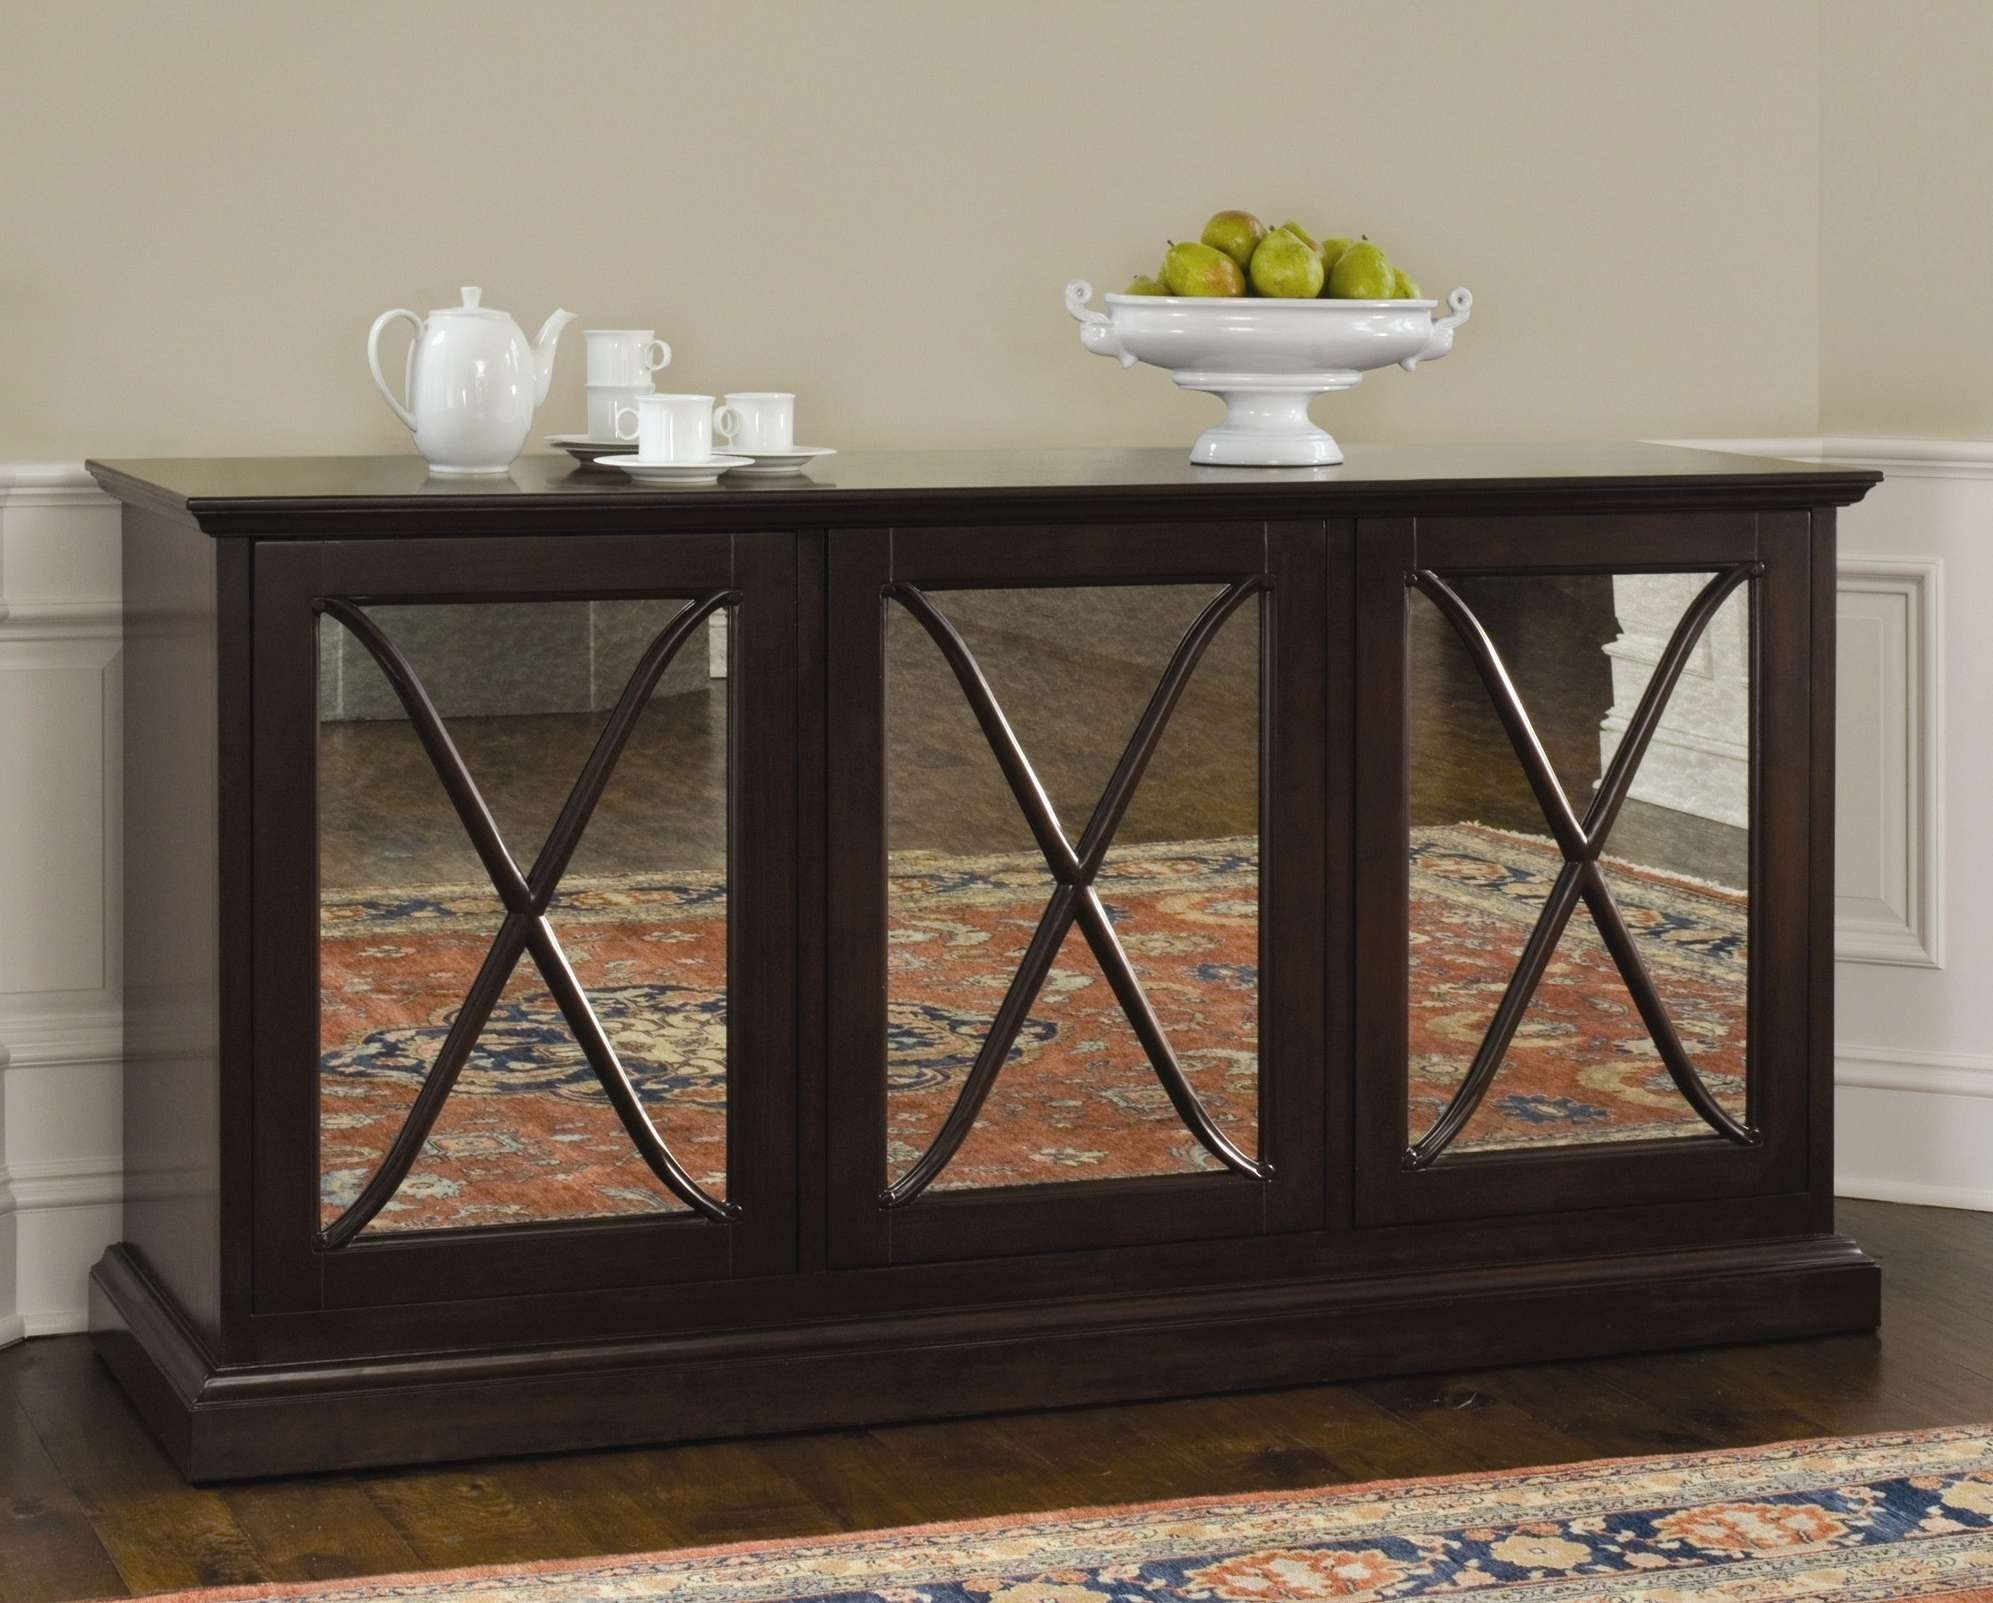 Mirrored Buffet Sideboard Server Credenza 1 – Home Design With Regard To Mirrored Sideboards And Buffets (View 11 of 20)